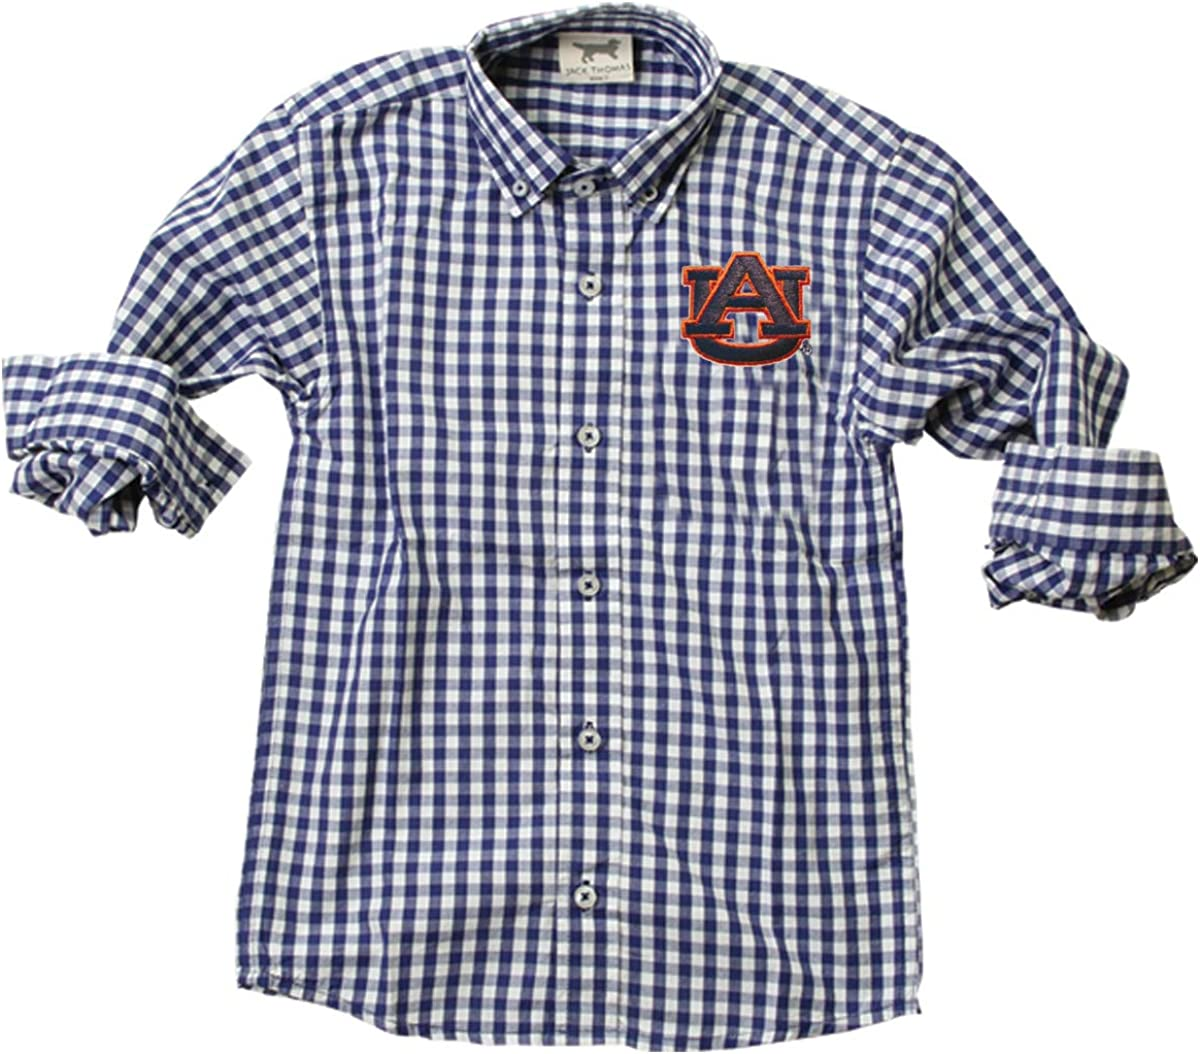 favorite Wes and Willy Finally popular brand Boys Shirt L S Gingham